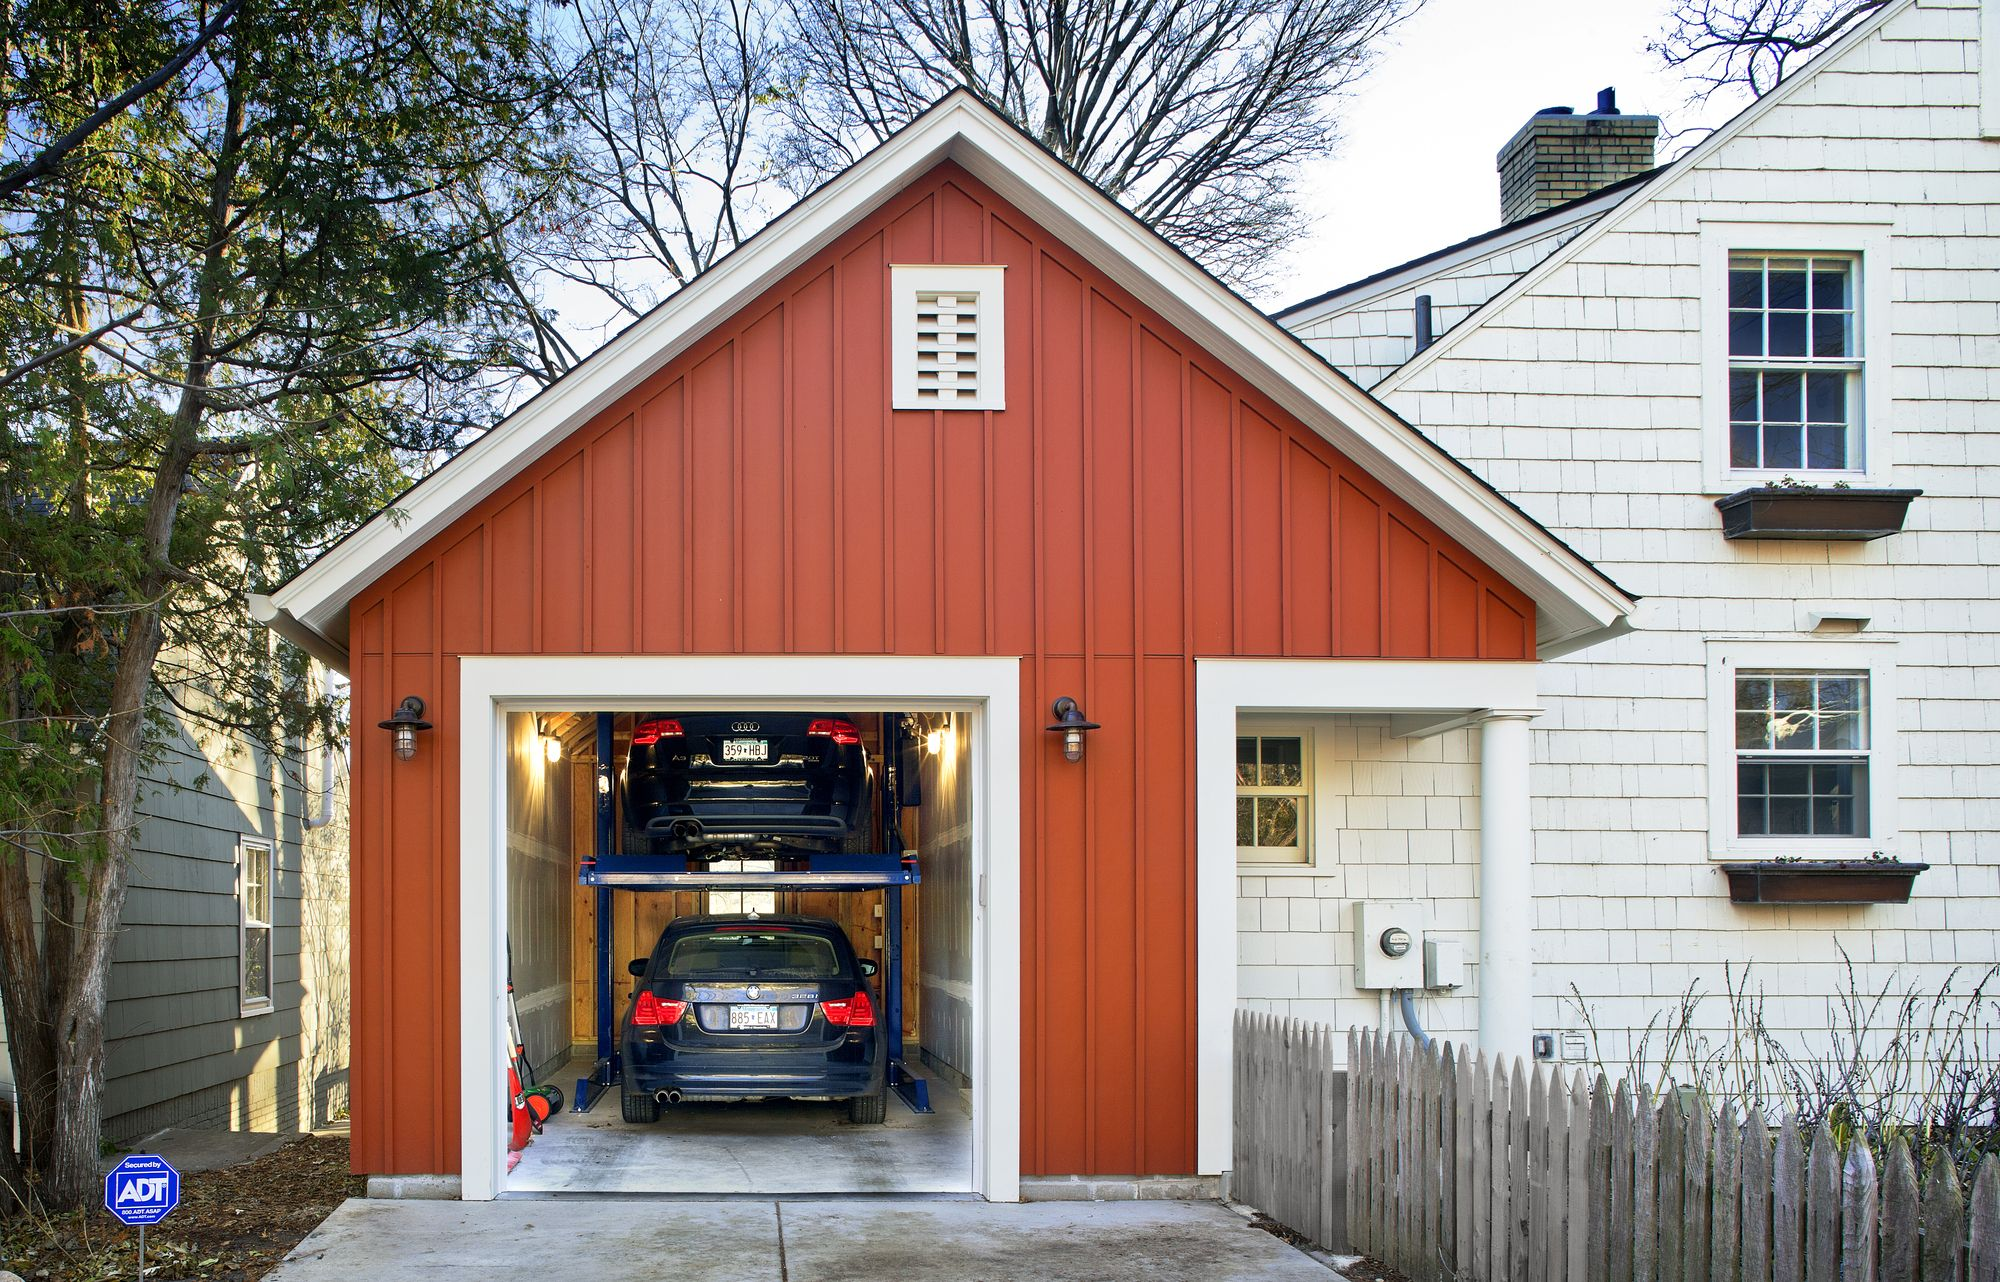 Everyday solutions: Garage is built up instead of out | Car garage ...